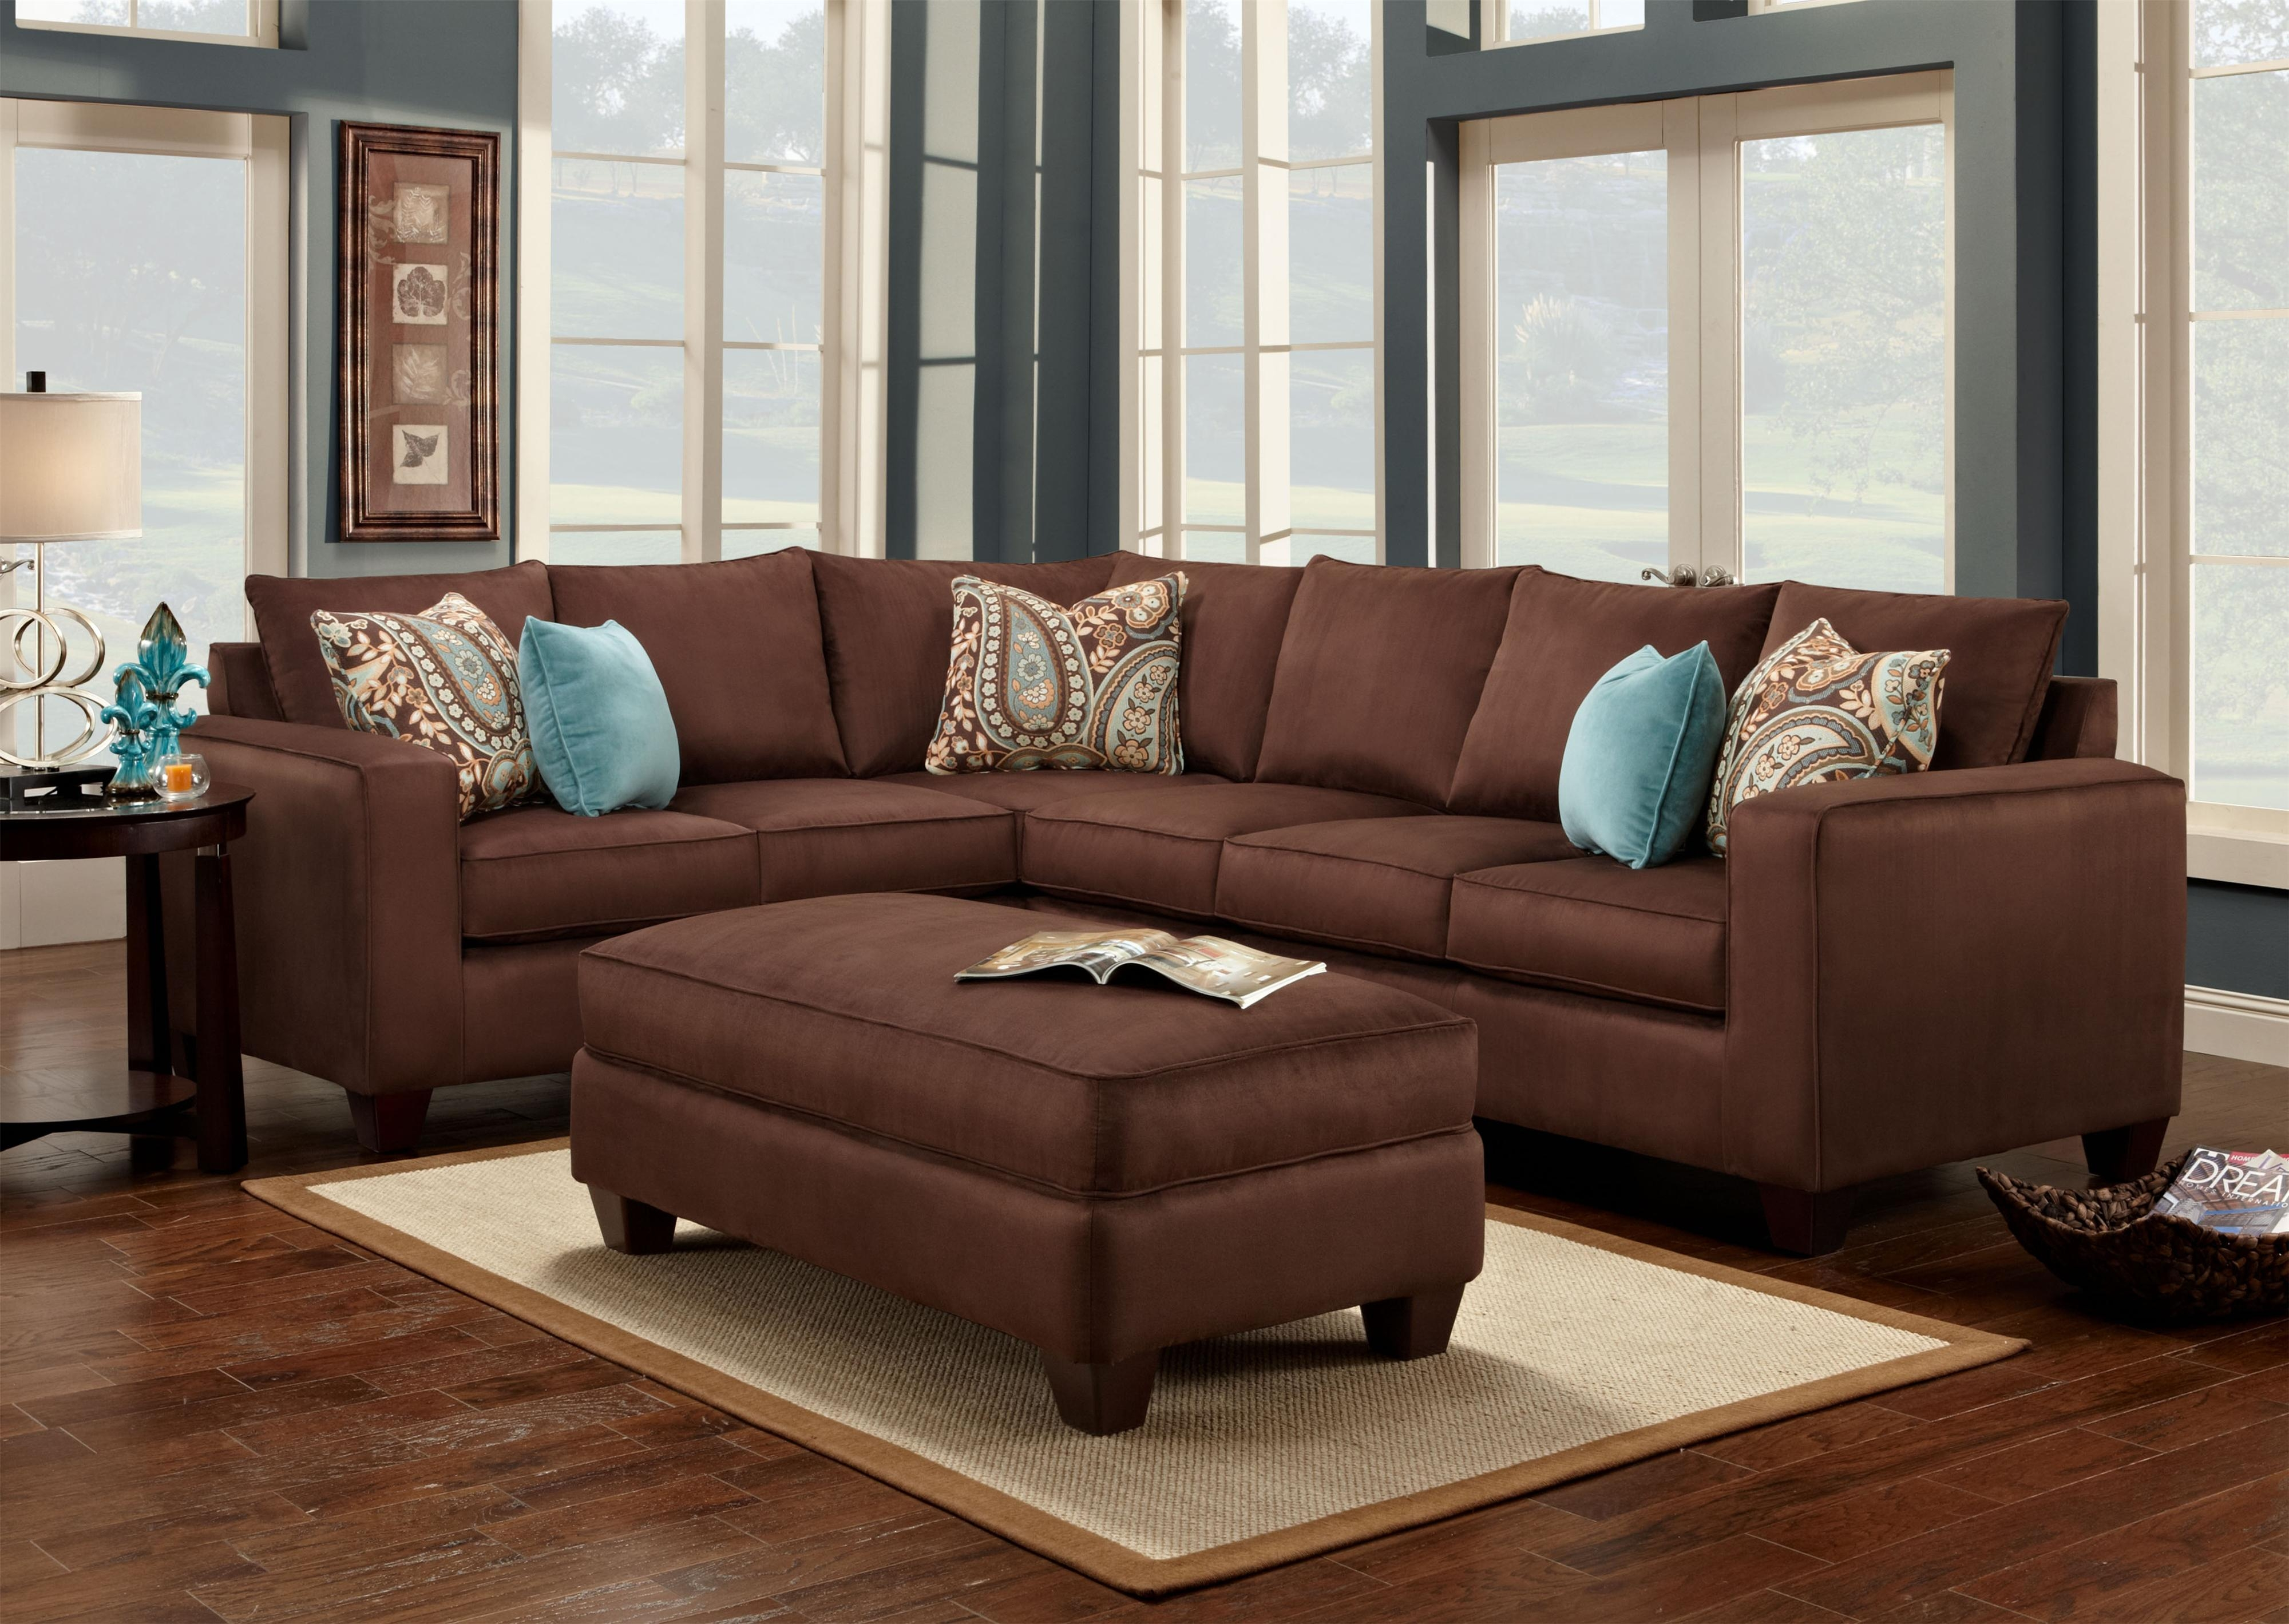 Furniture Nice Interior Furniture Design Robert Michaels Intended For Down Feather Sectional Sofa (#9 of 12)